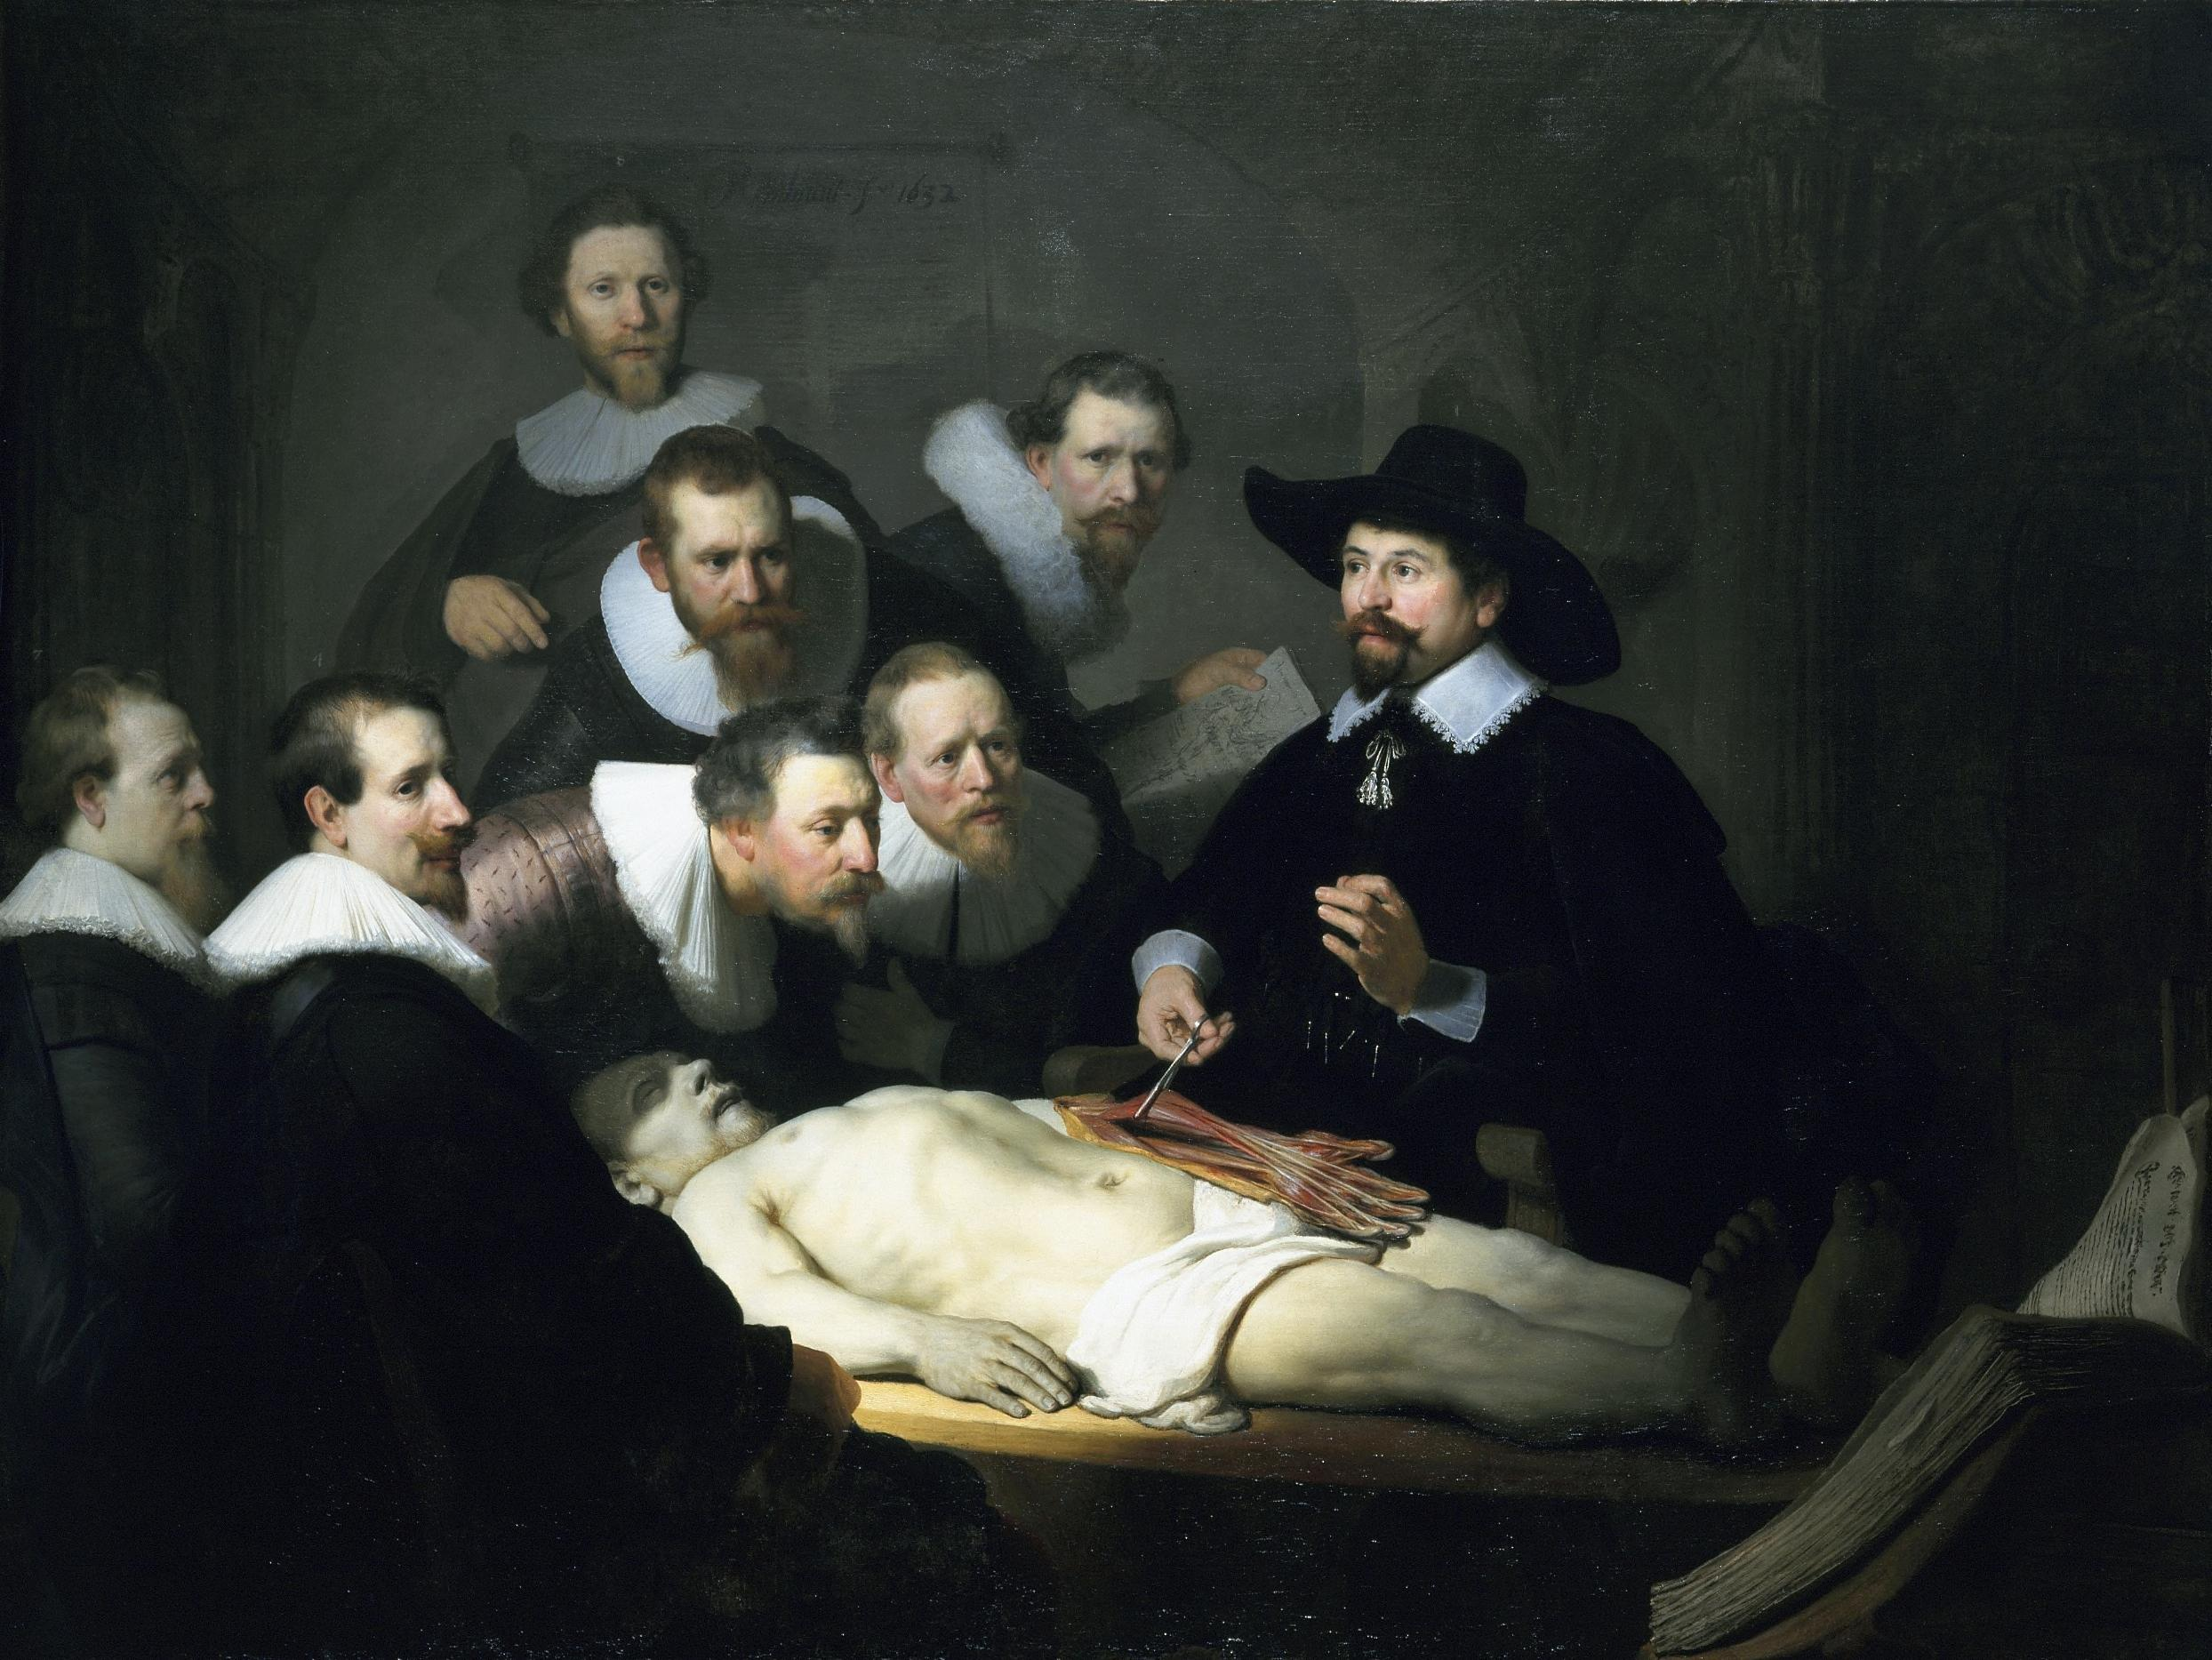 Rembrandt: Dr. Tulps anatomiforelesning  (1632)